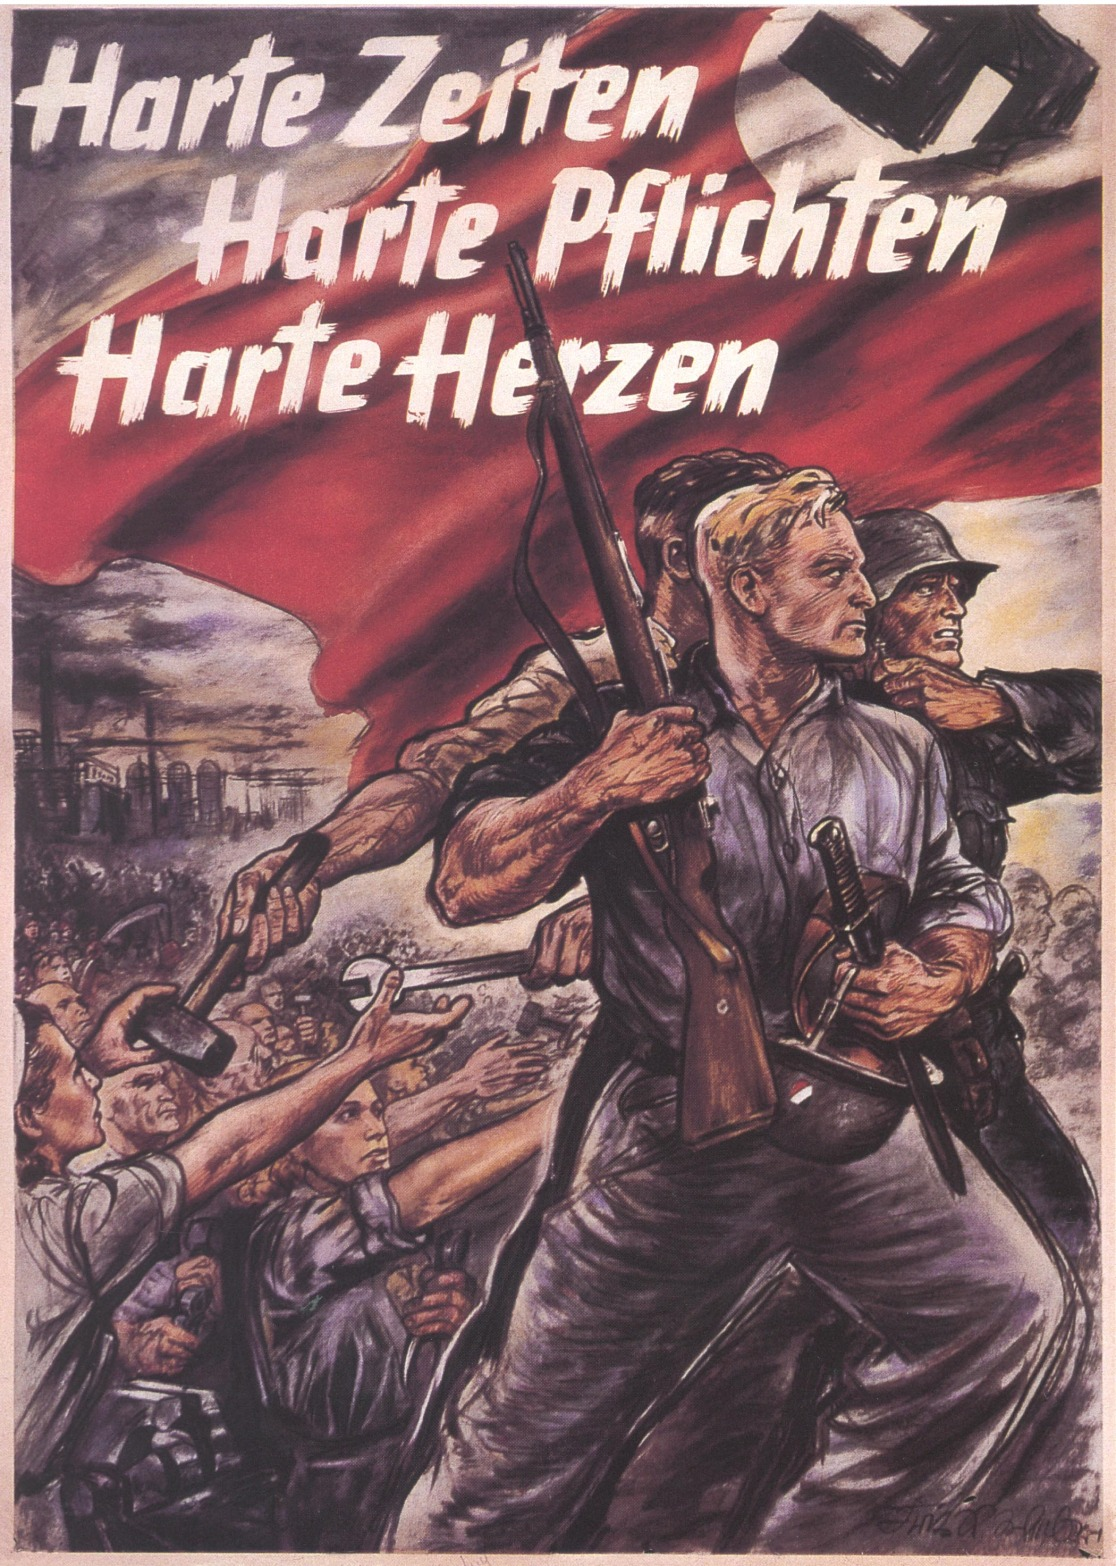 influence of nazi germany wwii propaganda films Films played a major part in propaganda in nazi germany the film industry was controlled by the nazis and ranged fromanti-semitic films such as the we are convinced that films constitute one of the most modern and scientific means of influencing the mass therefore the government must not.